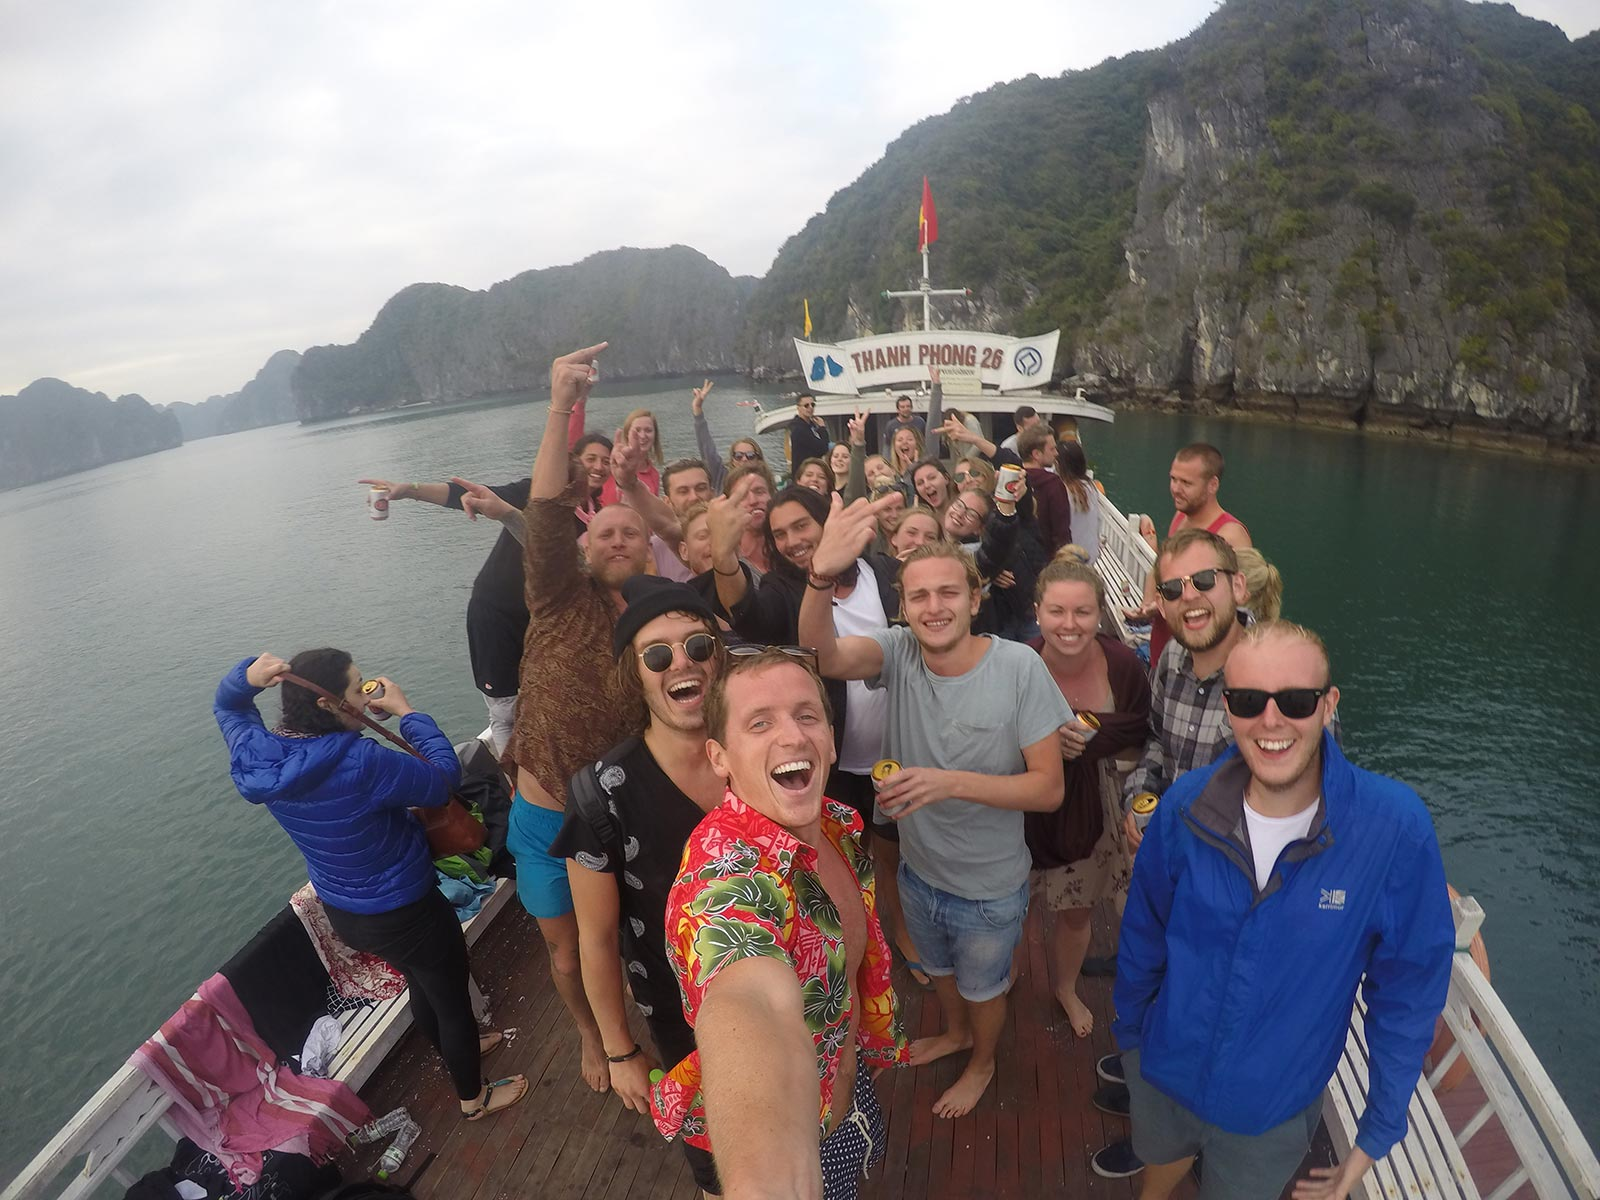 Castaway cruise with David Simpson and friends in Ha Long Bay, Vietnam. The greatest party cruise in the world